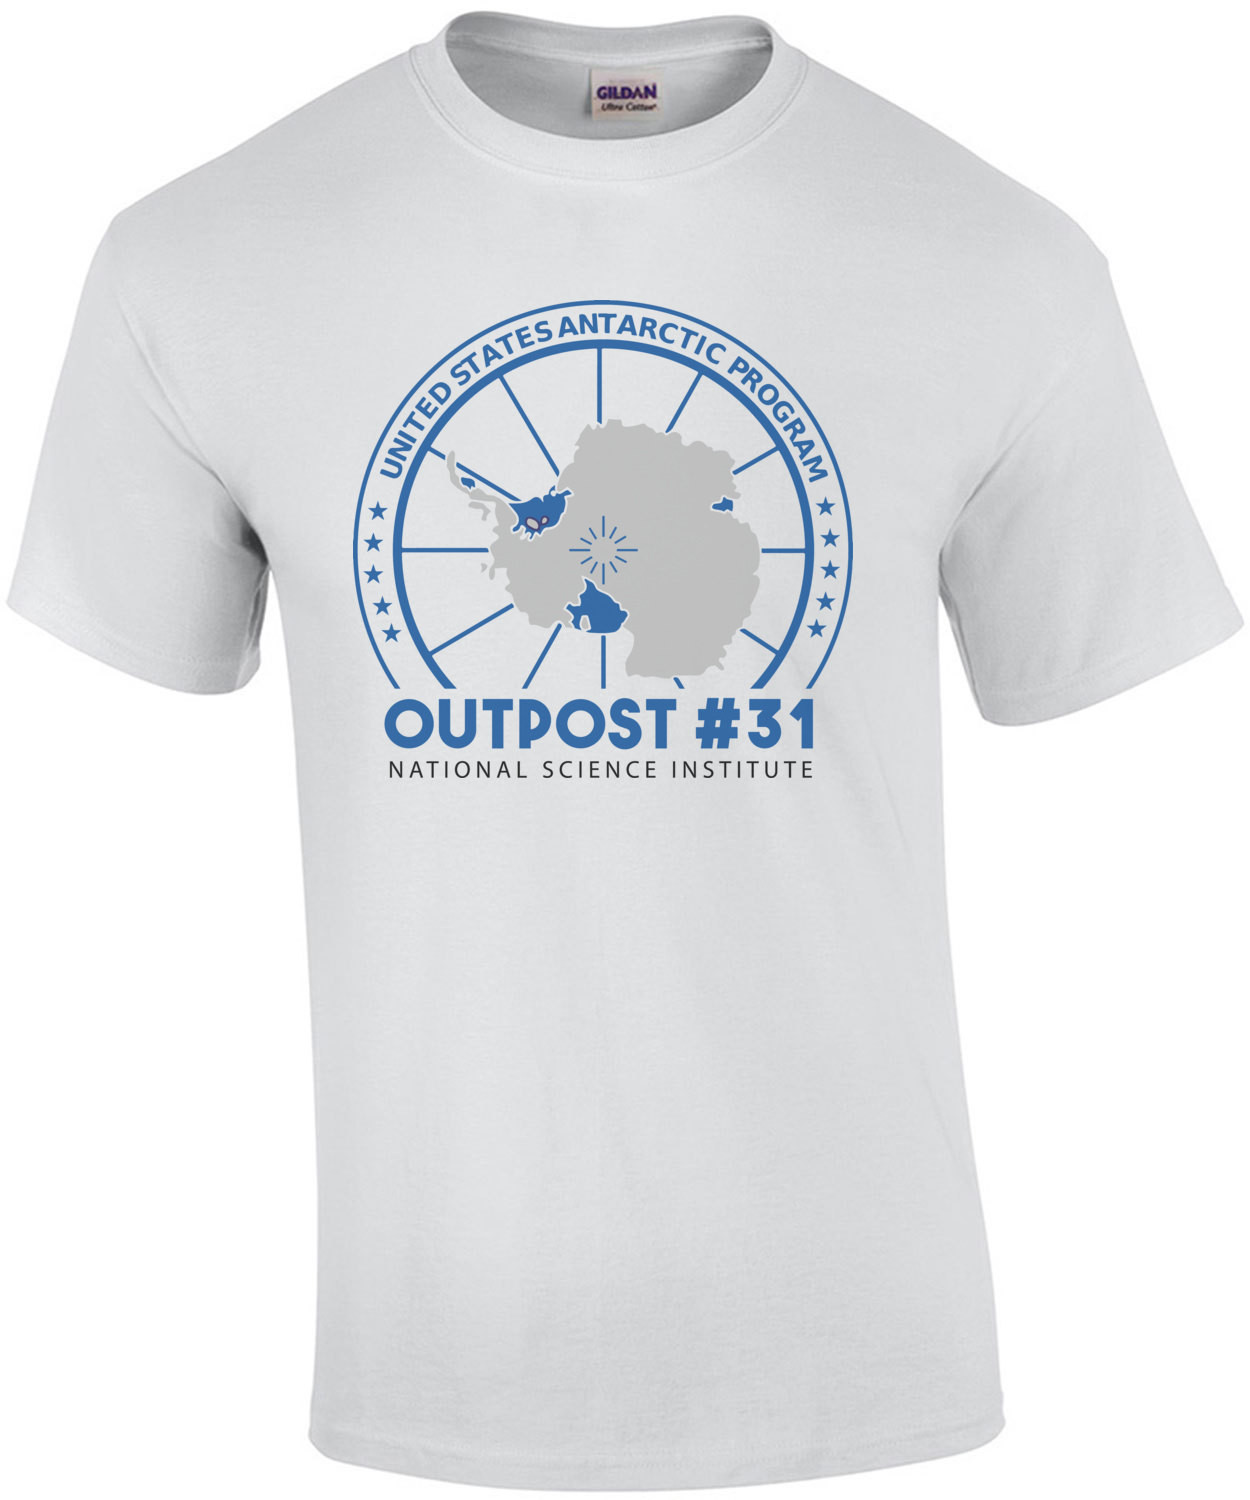 U.S. Antarctica Research Program - Outpost 31 - The Thing T-Shirt